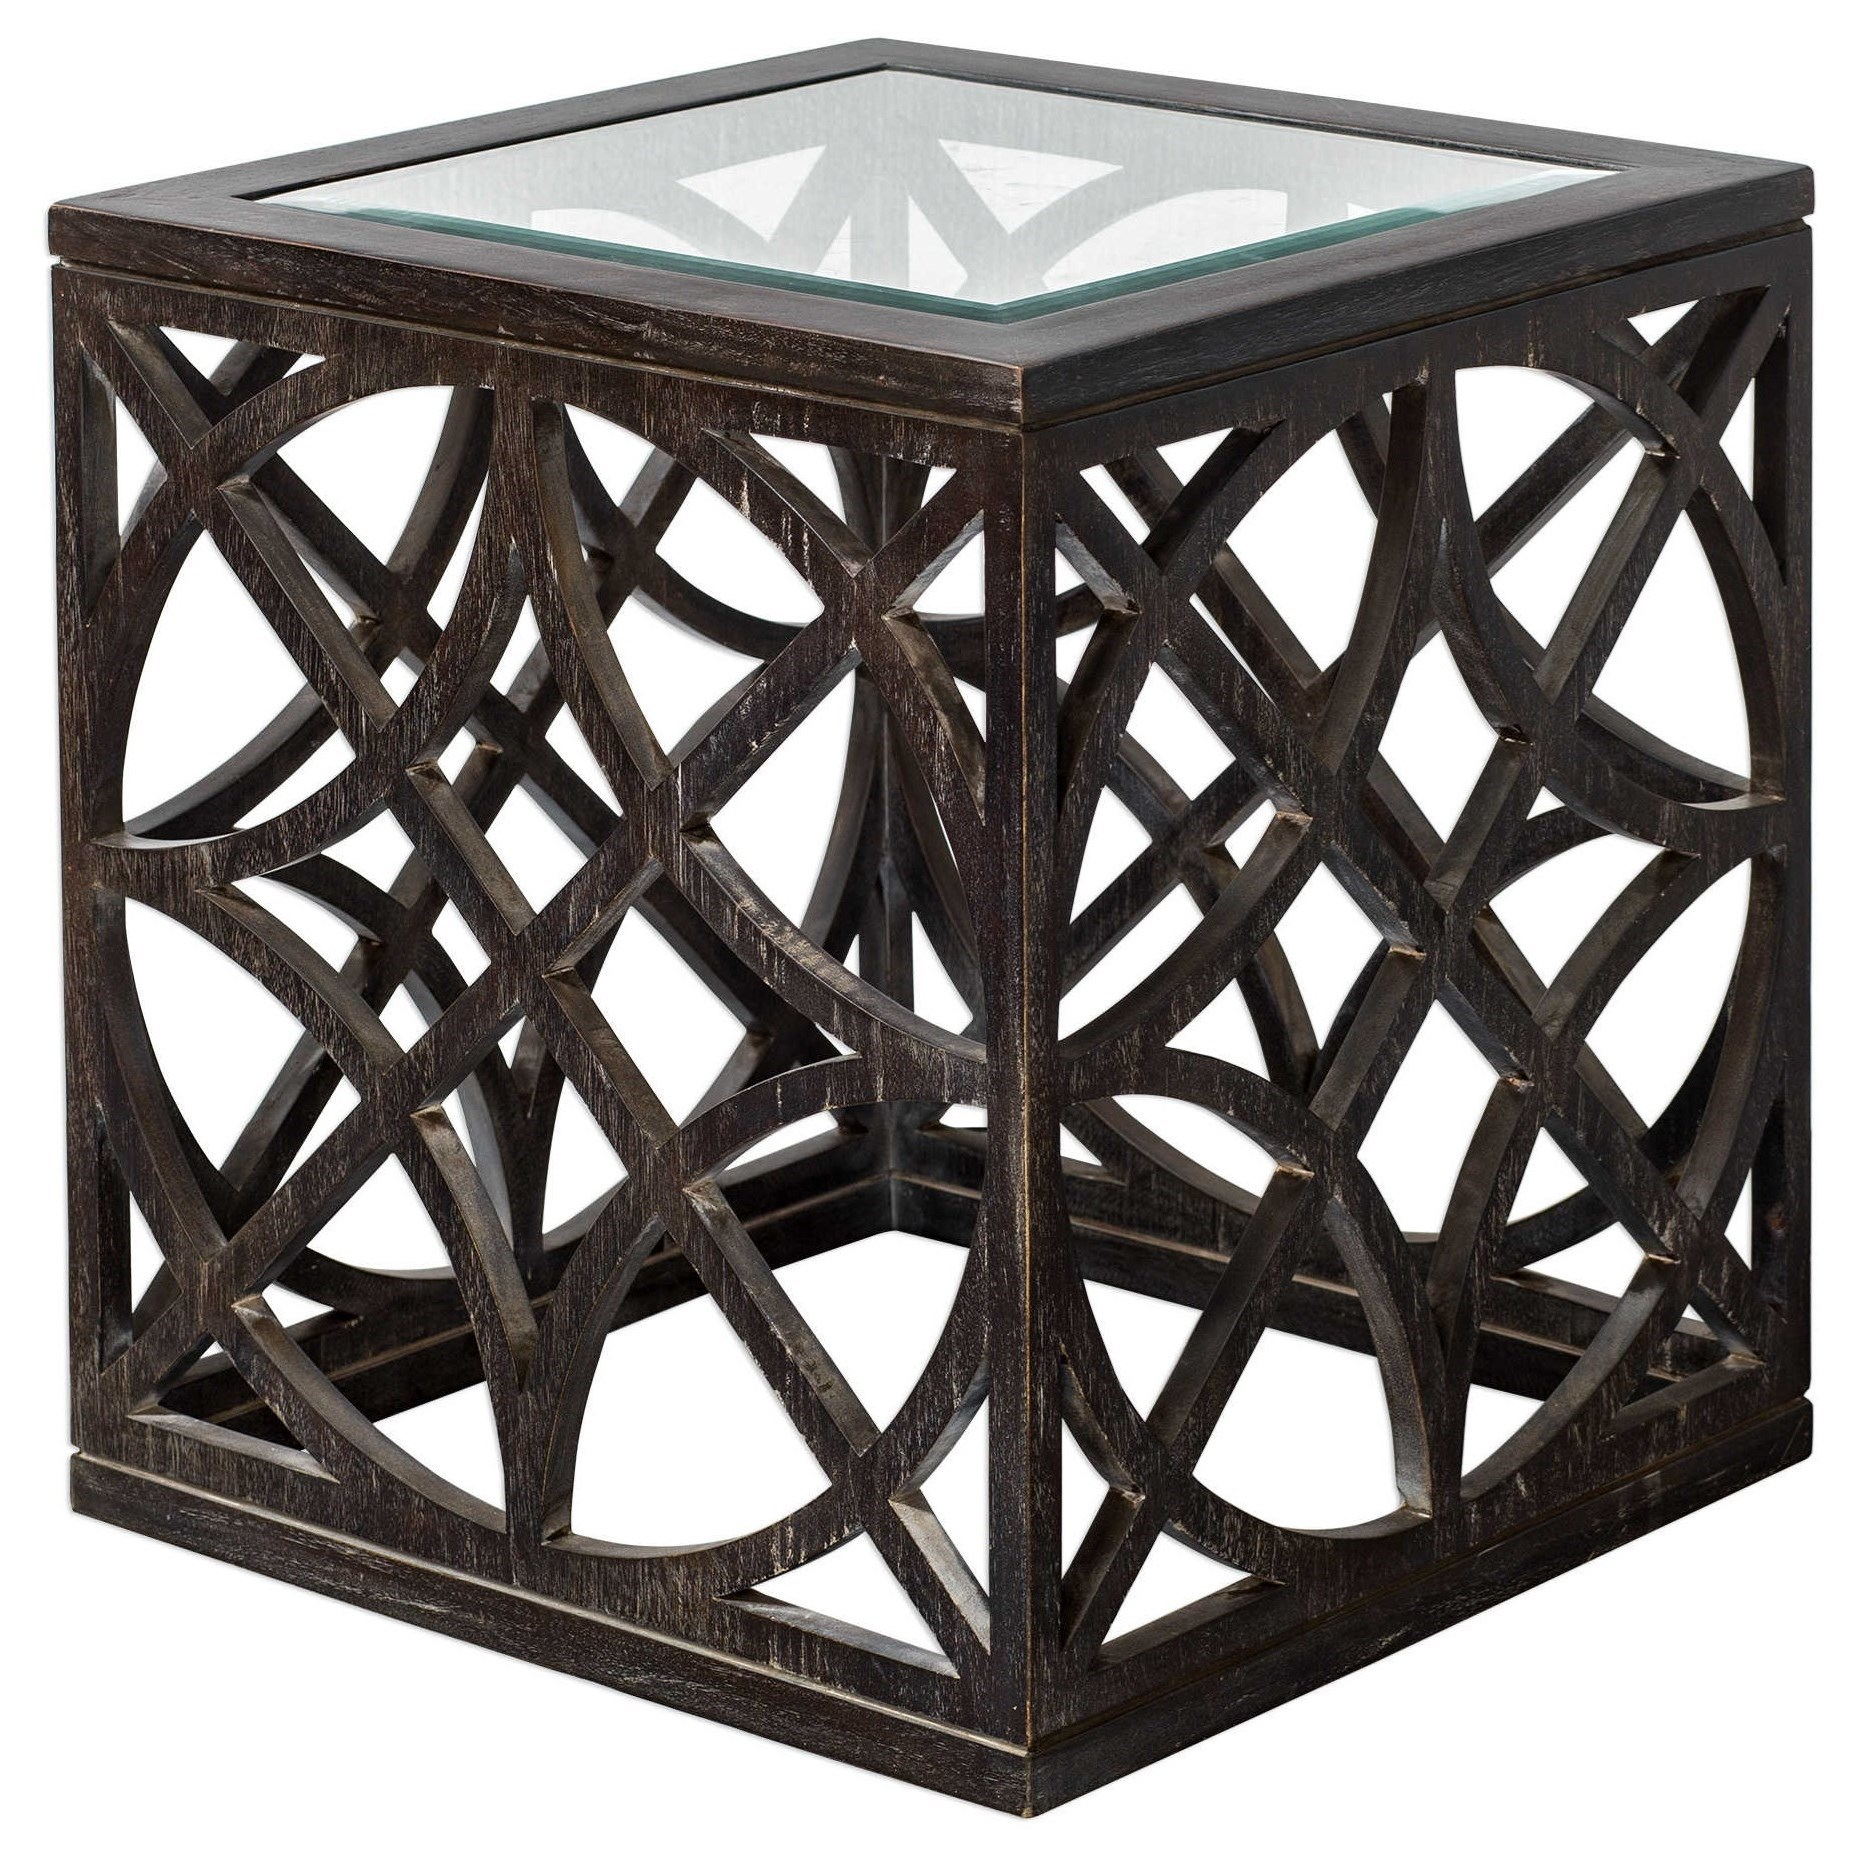 Accent Furniture - Occasional Tables Janeva Side Table by Uttermost at O'Dunk & O'Bright Furniture